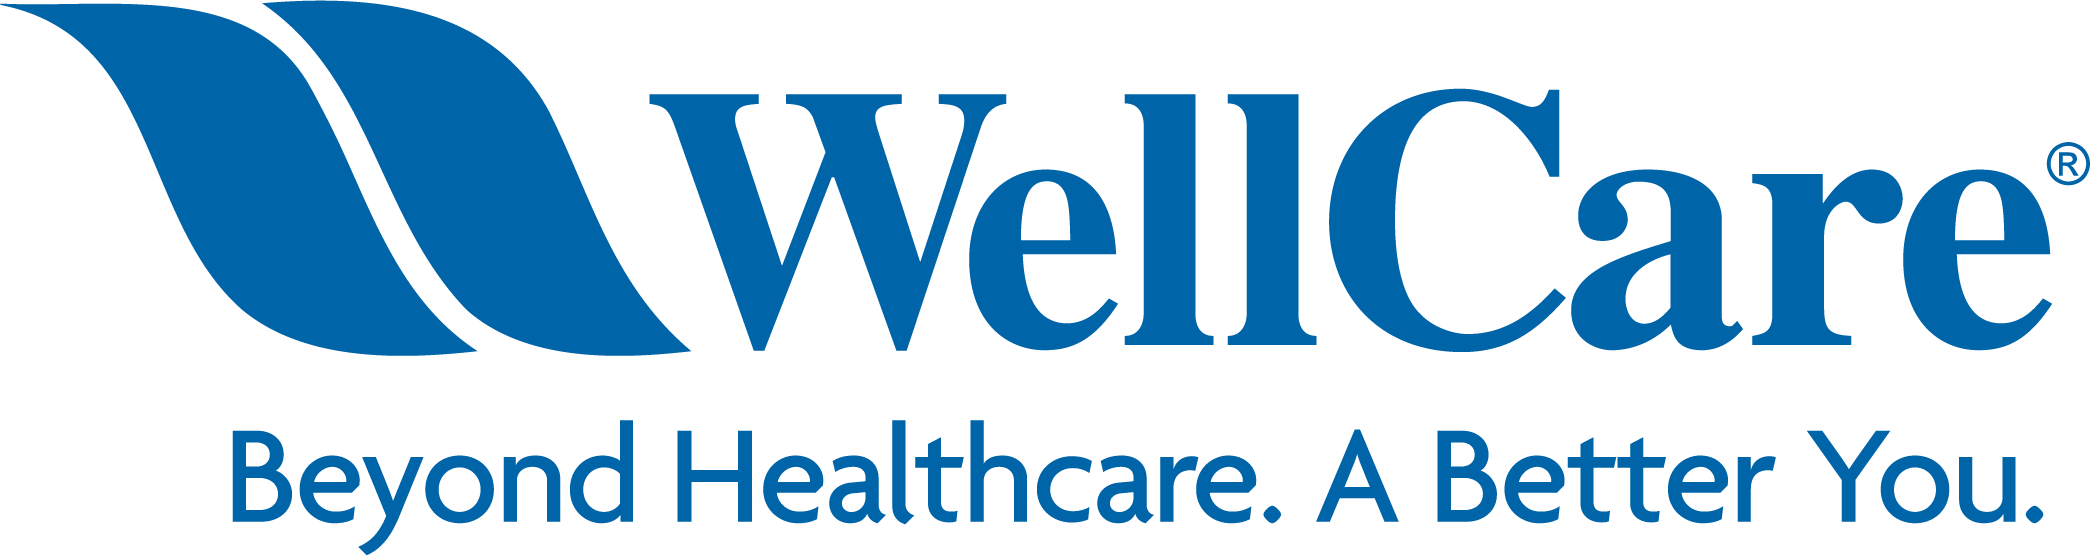 https://ohinj.org/wp-content/uploads/2020/04/WellCare_BeyondHealthcare.Blue_.ClearBackgroundLogo.png